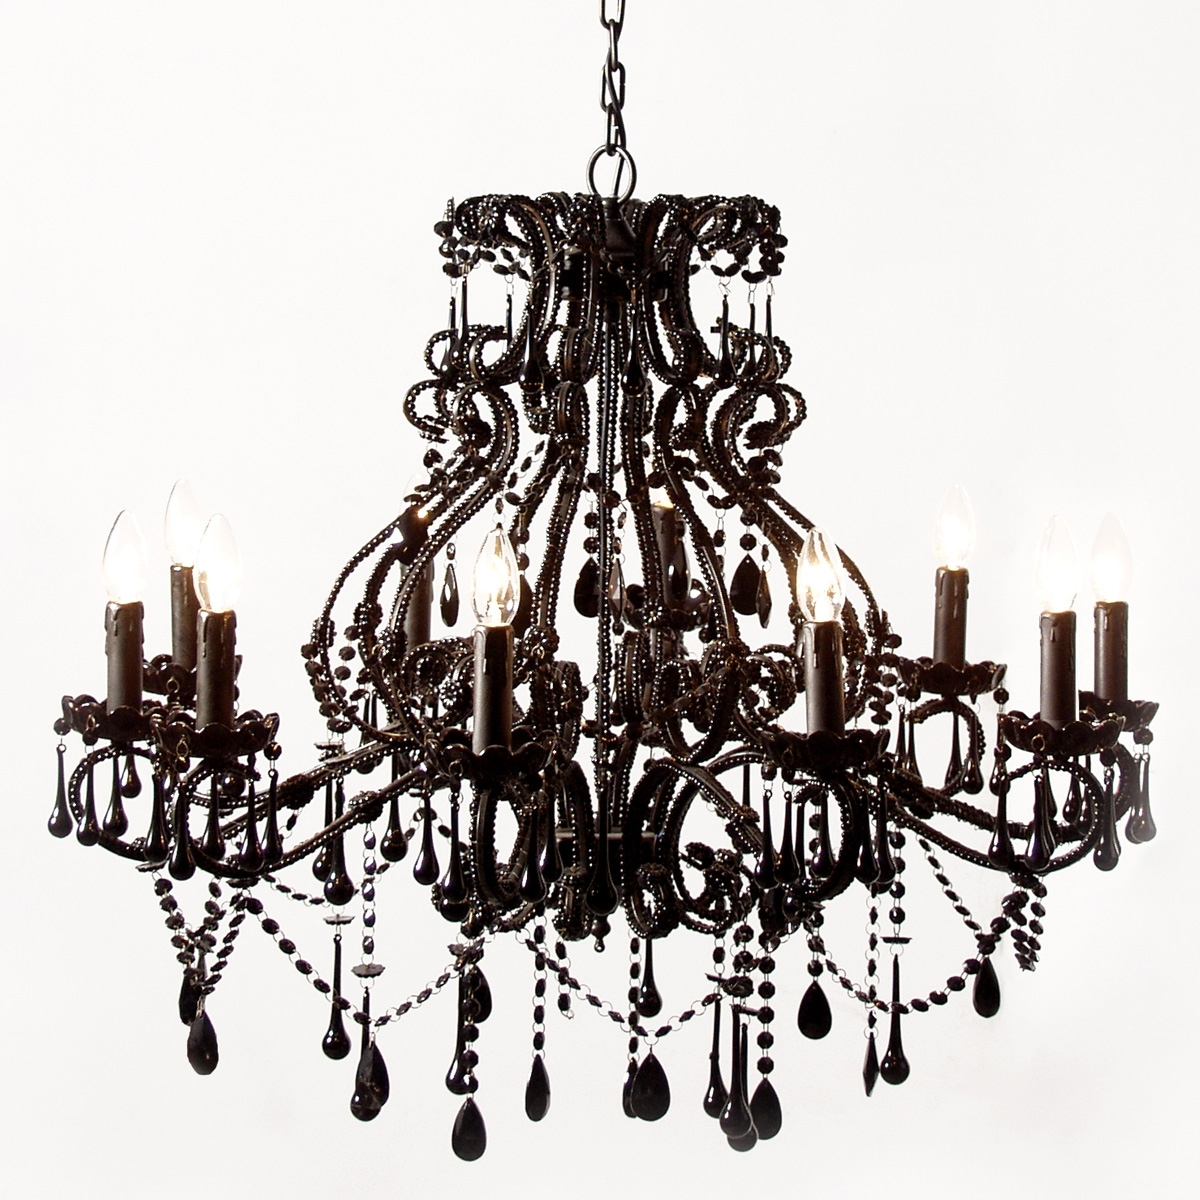 Vintage Black Chandelier For Well Known Vintage Black Chandelier For Bedroom Image 4 – Howiezine (View 8 of 15)